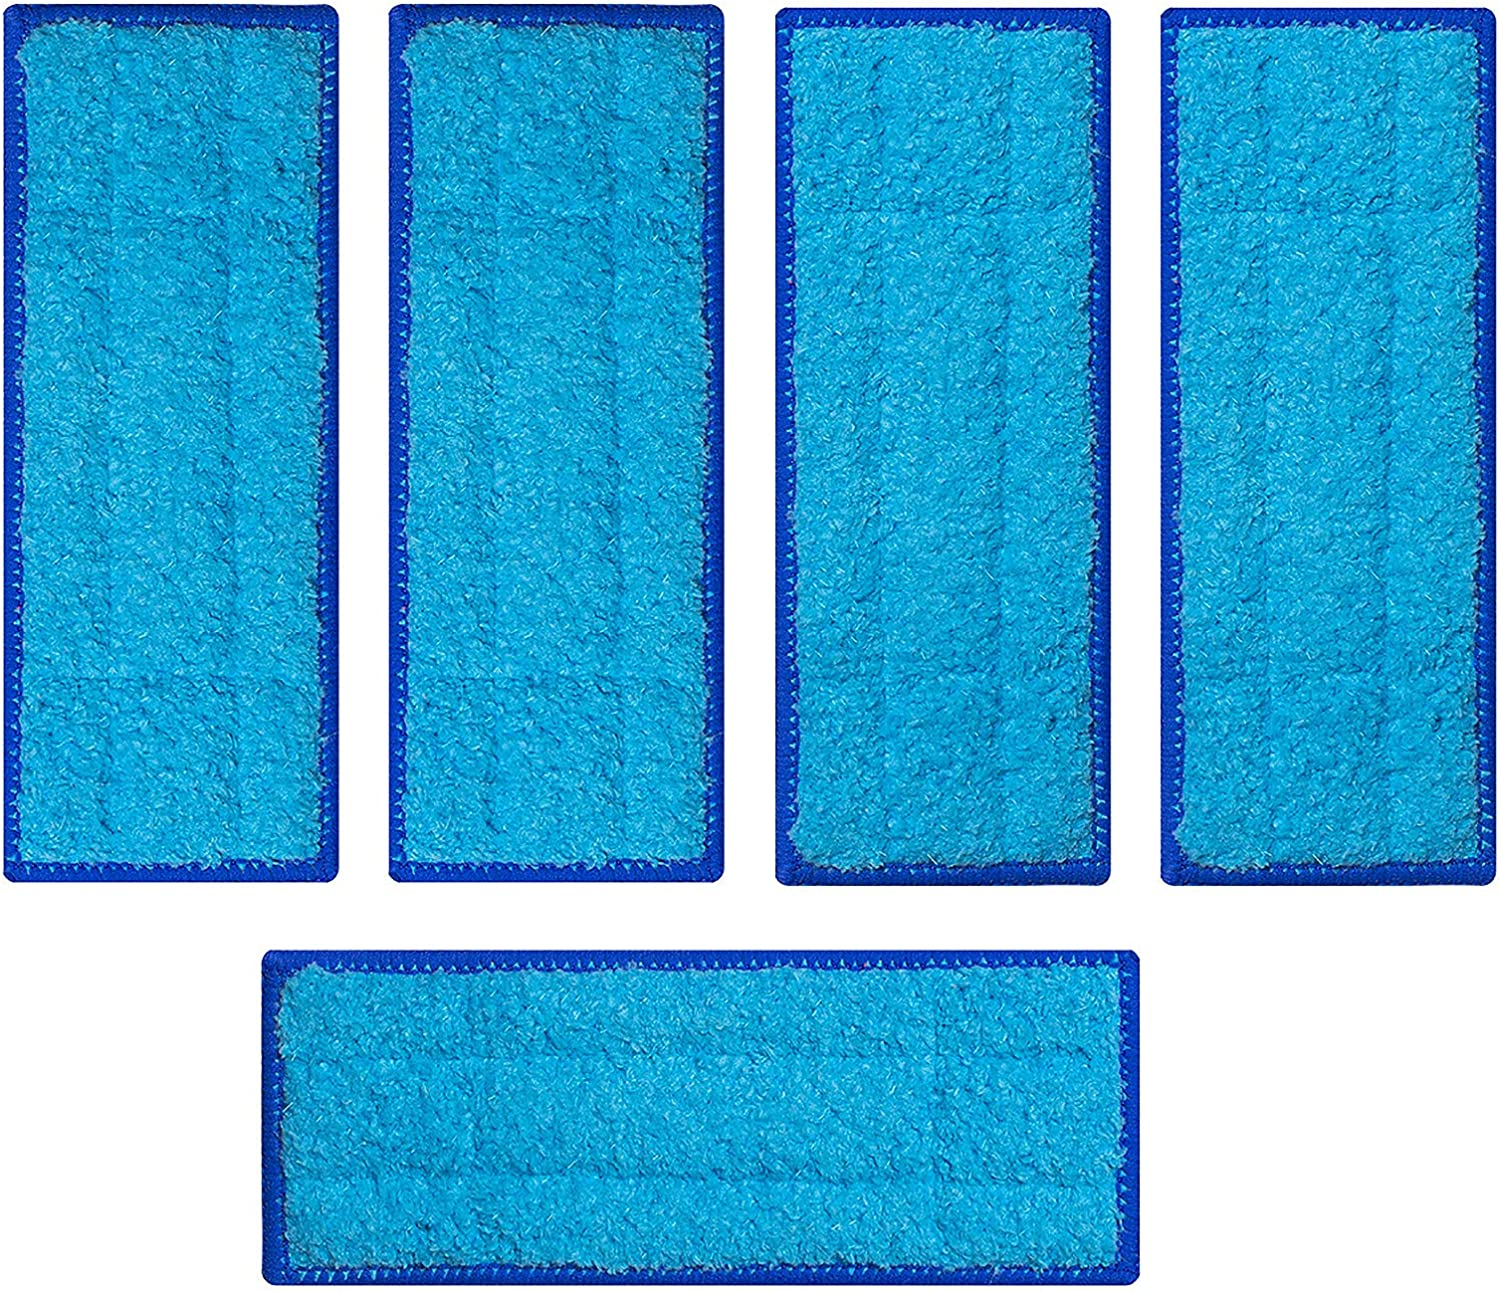 BESKIT 5 2021 spring and summer new Pack Washable Wet Mopping Jet Pads Braava 240 Max 66% OFF 241 for